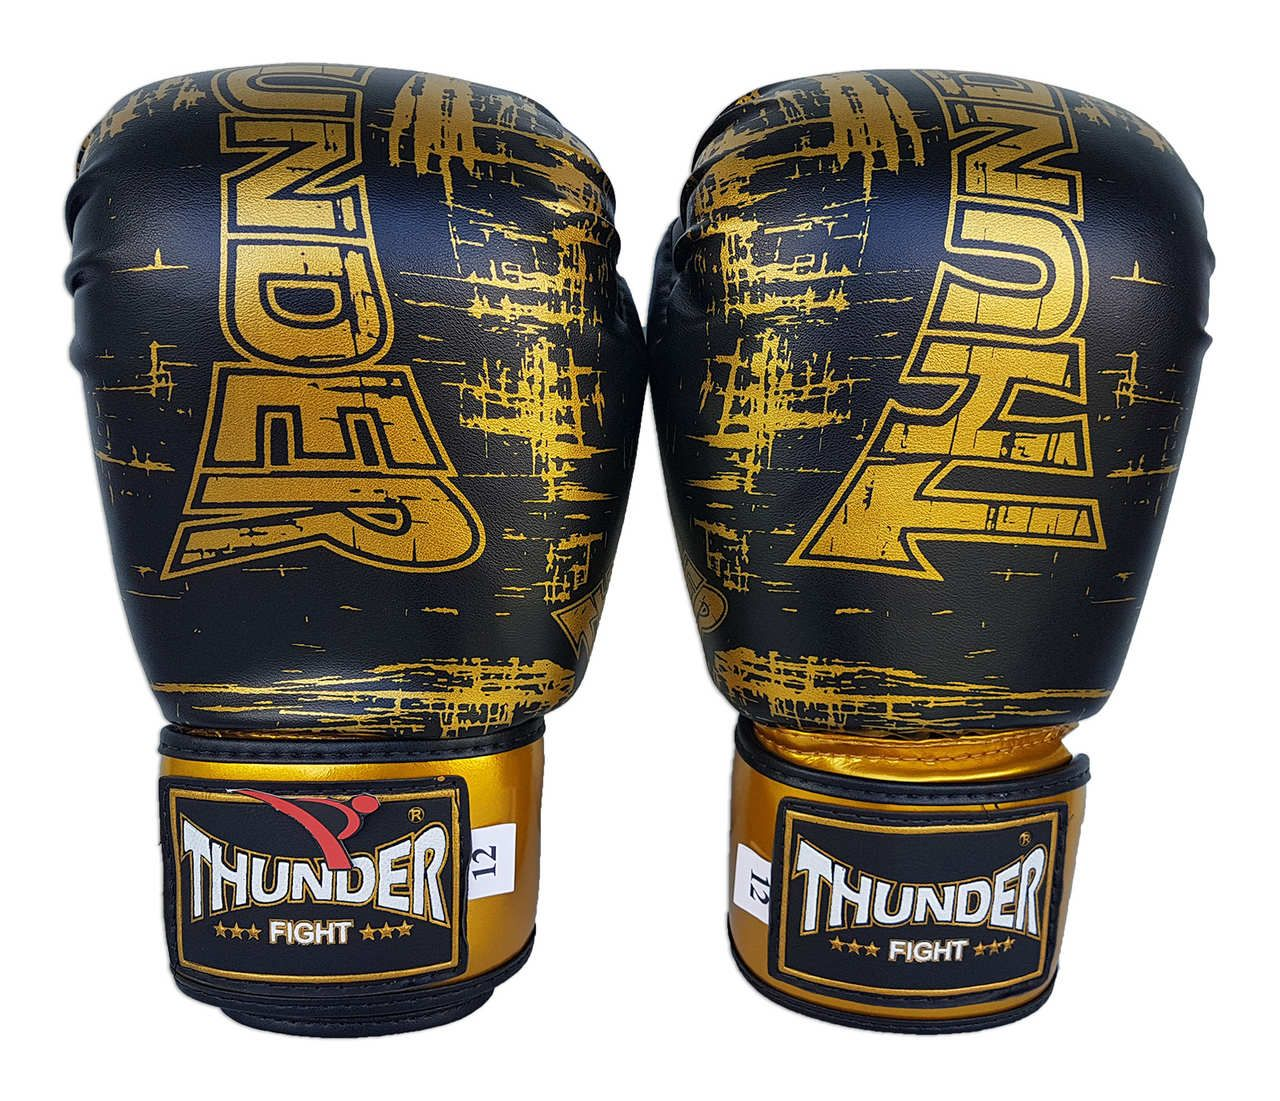 Kit de Boxe / Muay Thai 14oz - Preto Riscado - Thunder Fight   - PRALUTA SHOP